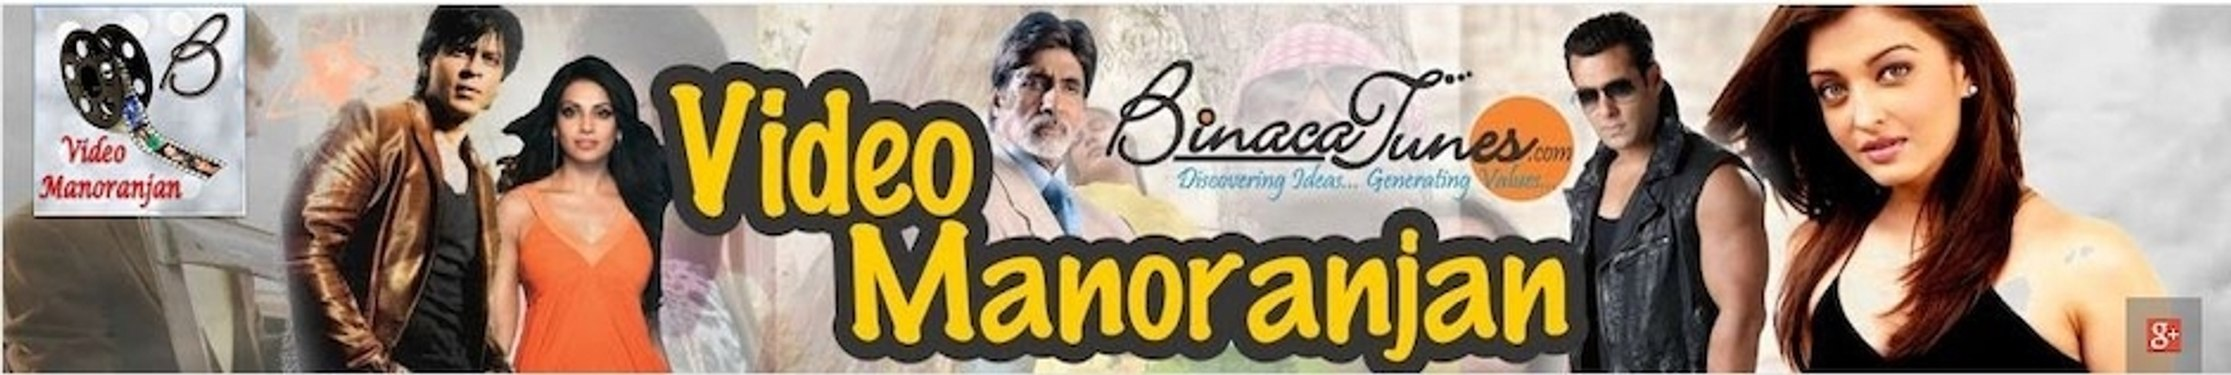 Video Manoranjan